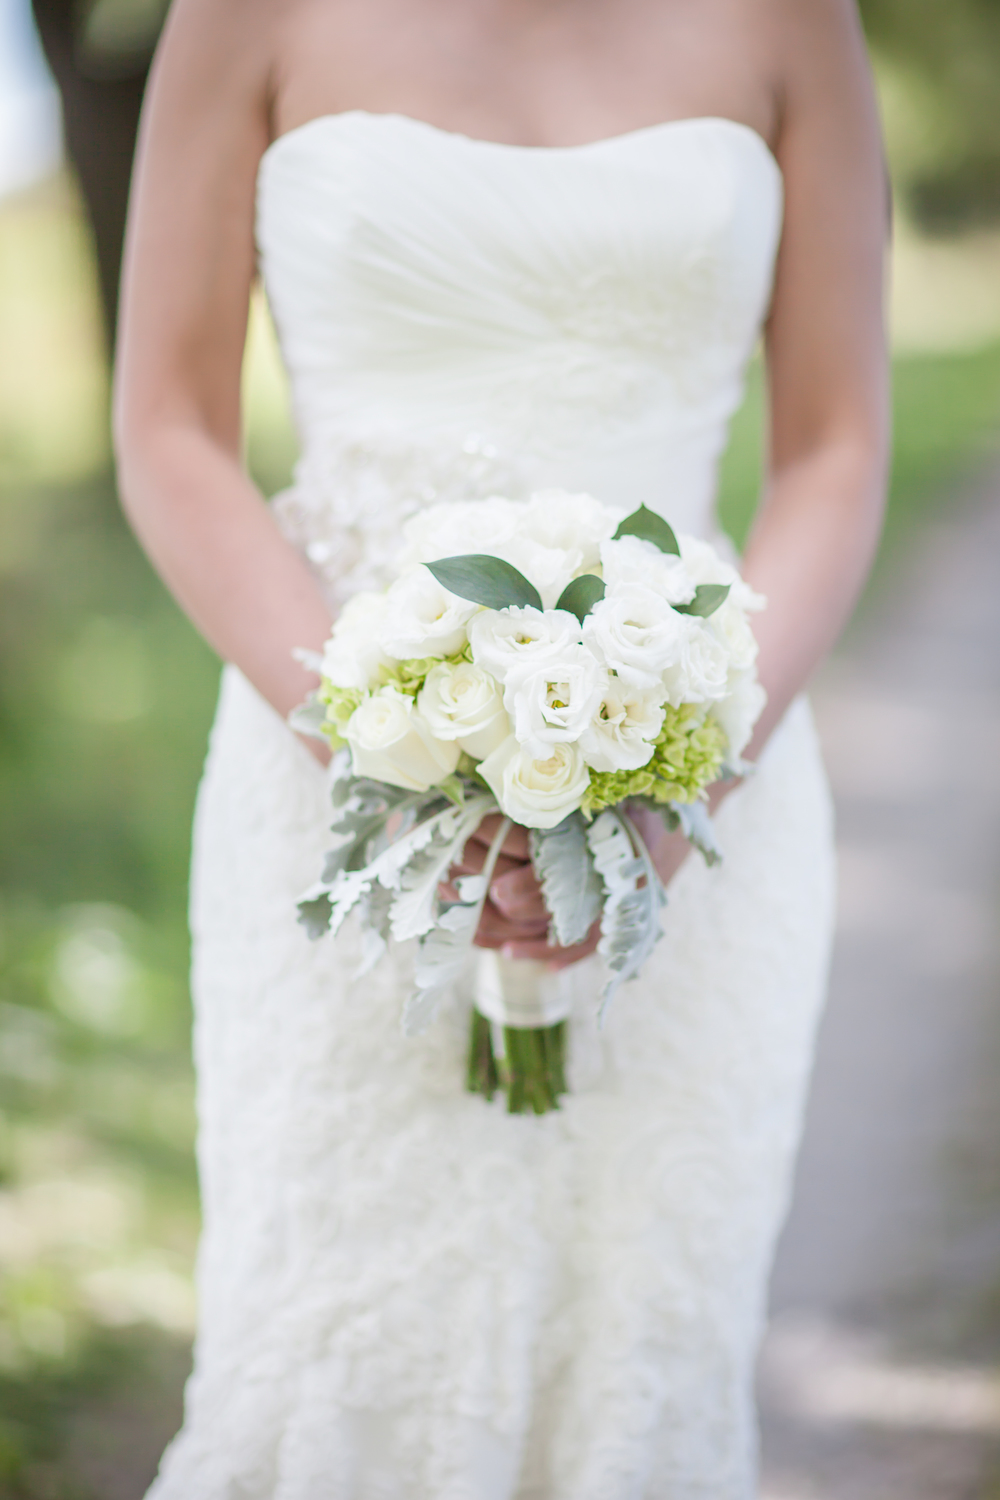 Close up photo of a bride holding her bouquet